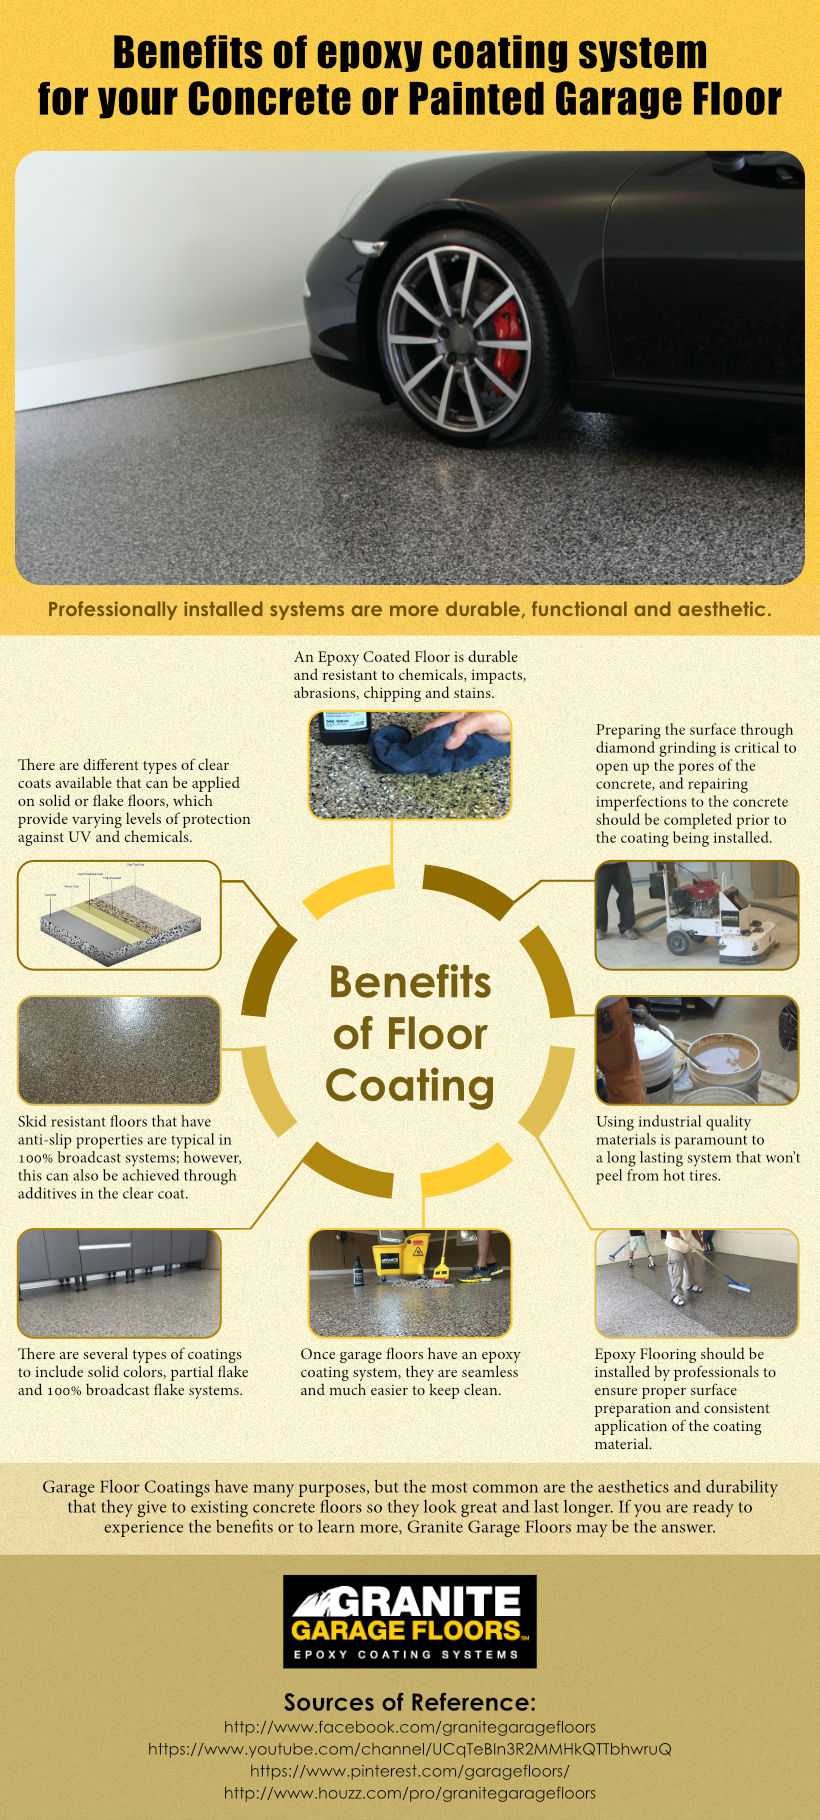 Benefits of Epoxy Coating System For Your Concrete or Painted Garage Floor